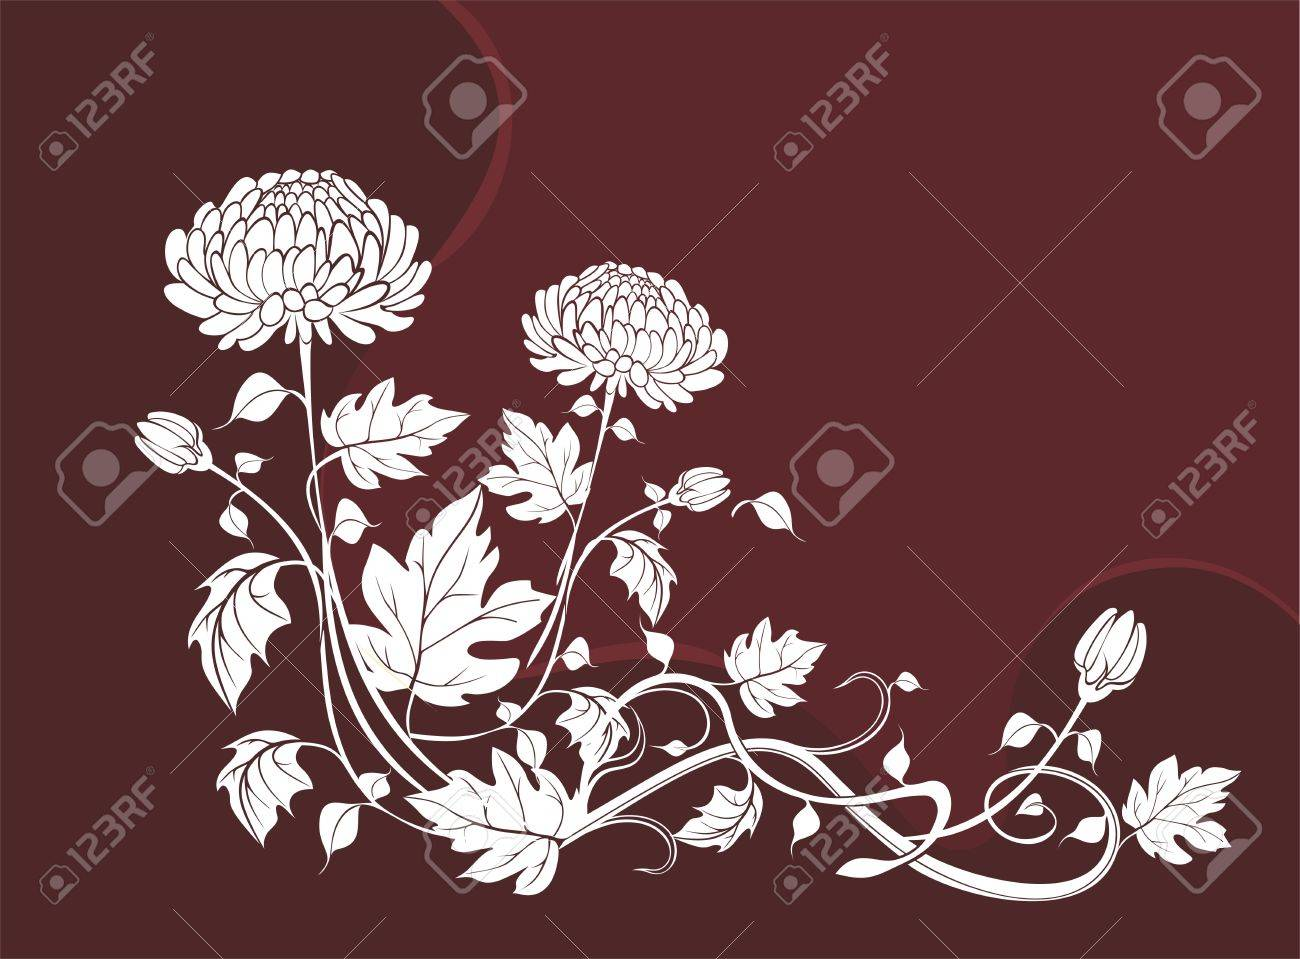 Elegant  flower background with chrysanthemums Stock Vector - 21744924